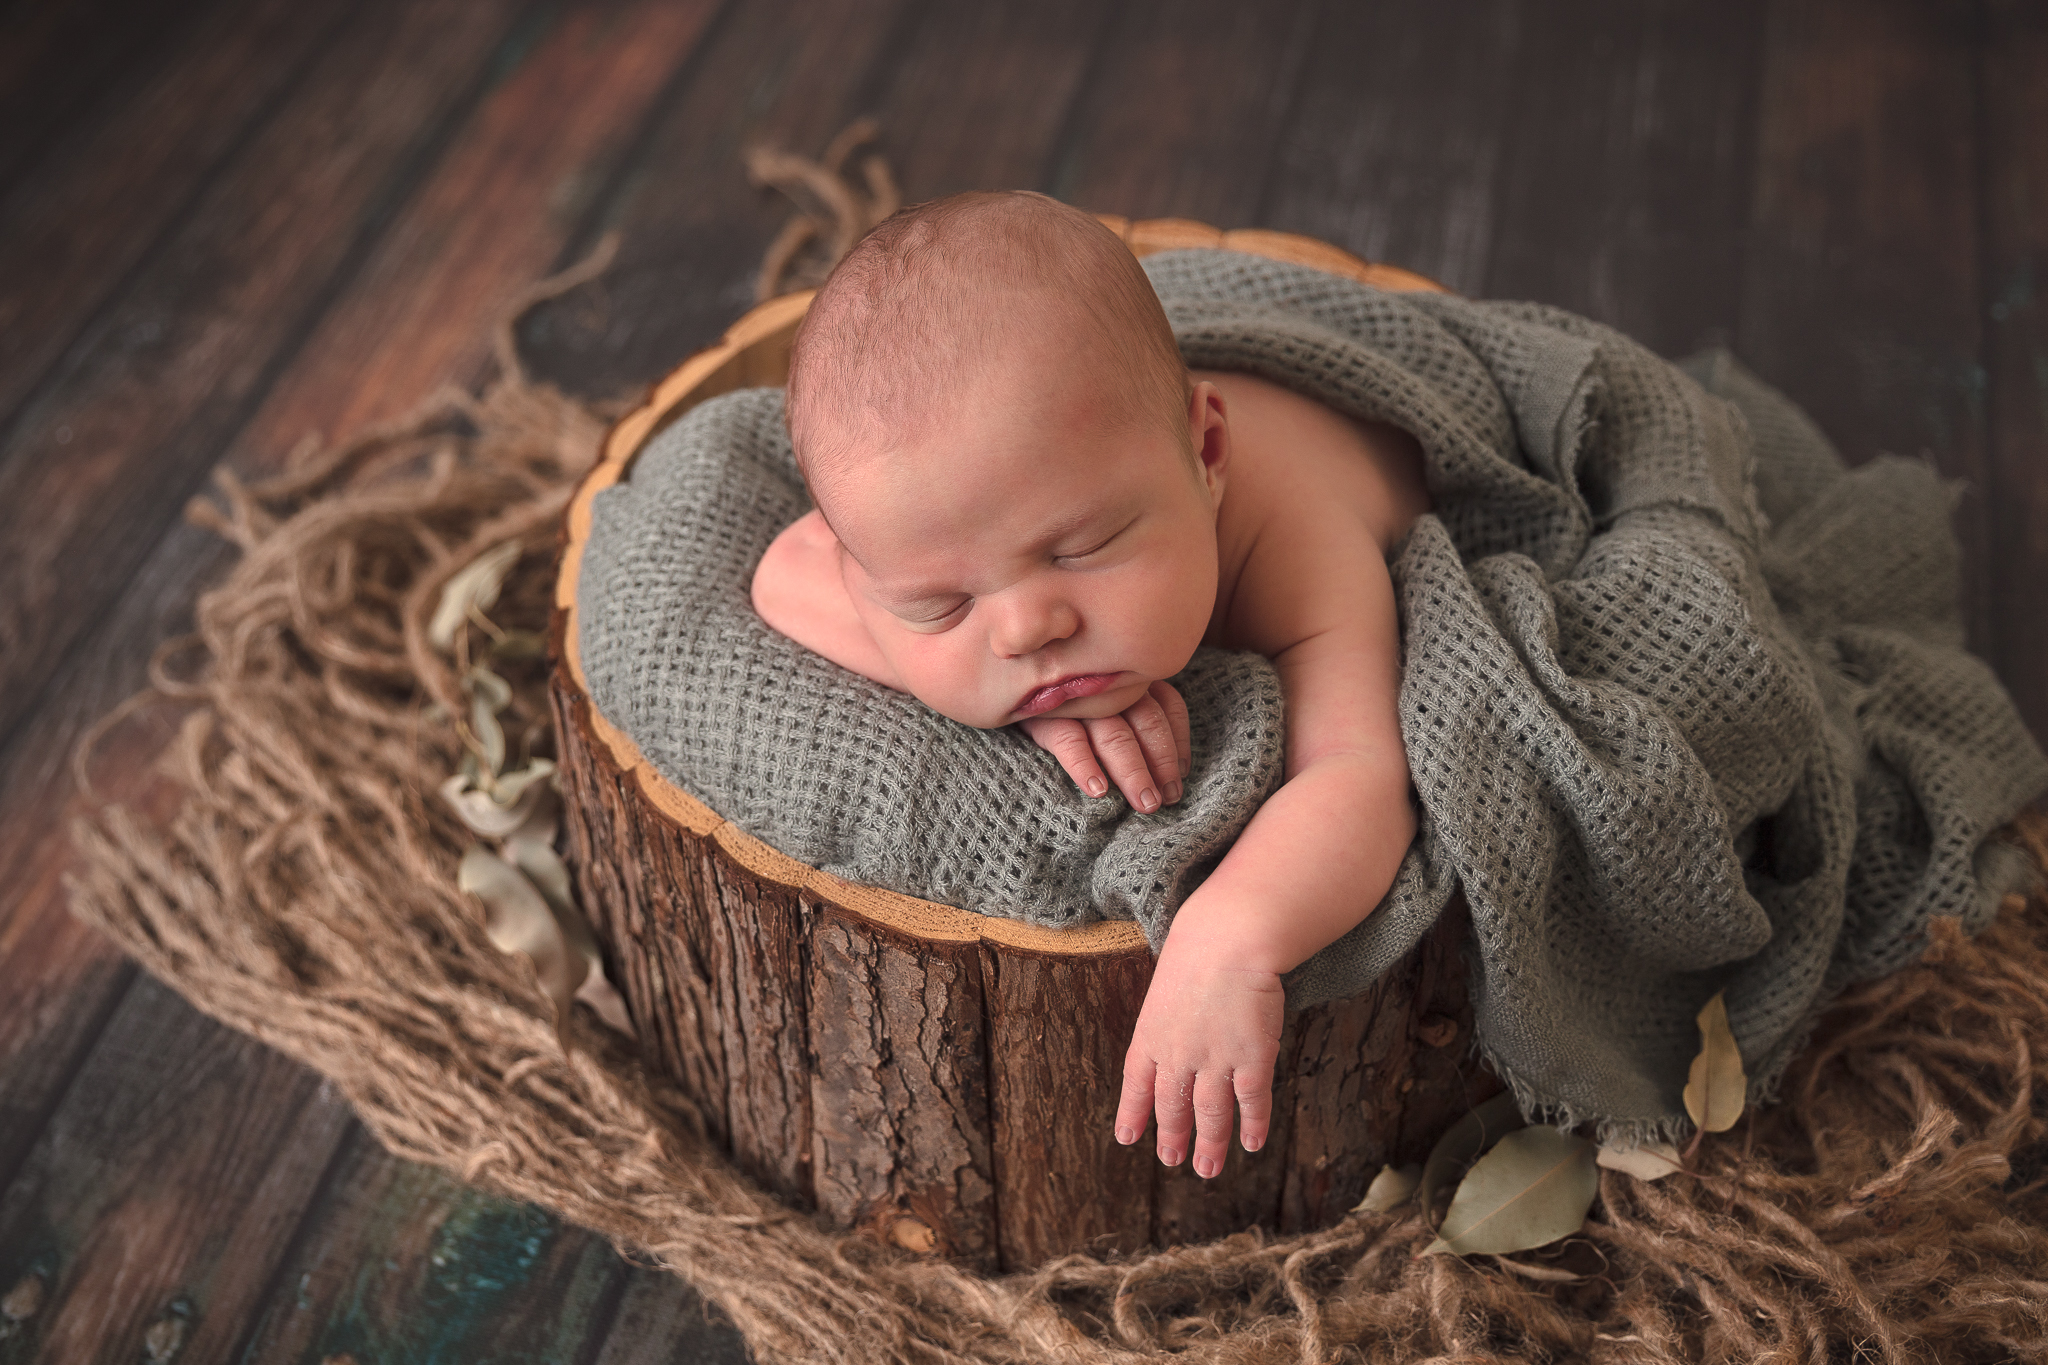 bark-tub-newborn-baby-adelaide-photography-jc-imagery-craigmore